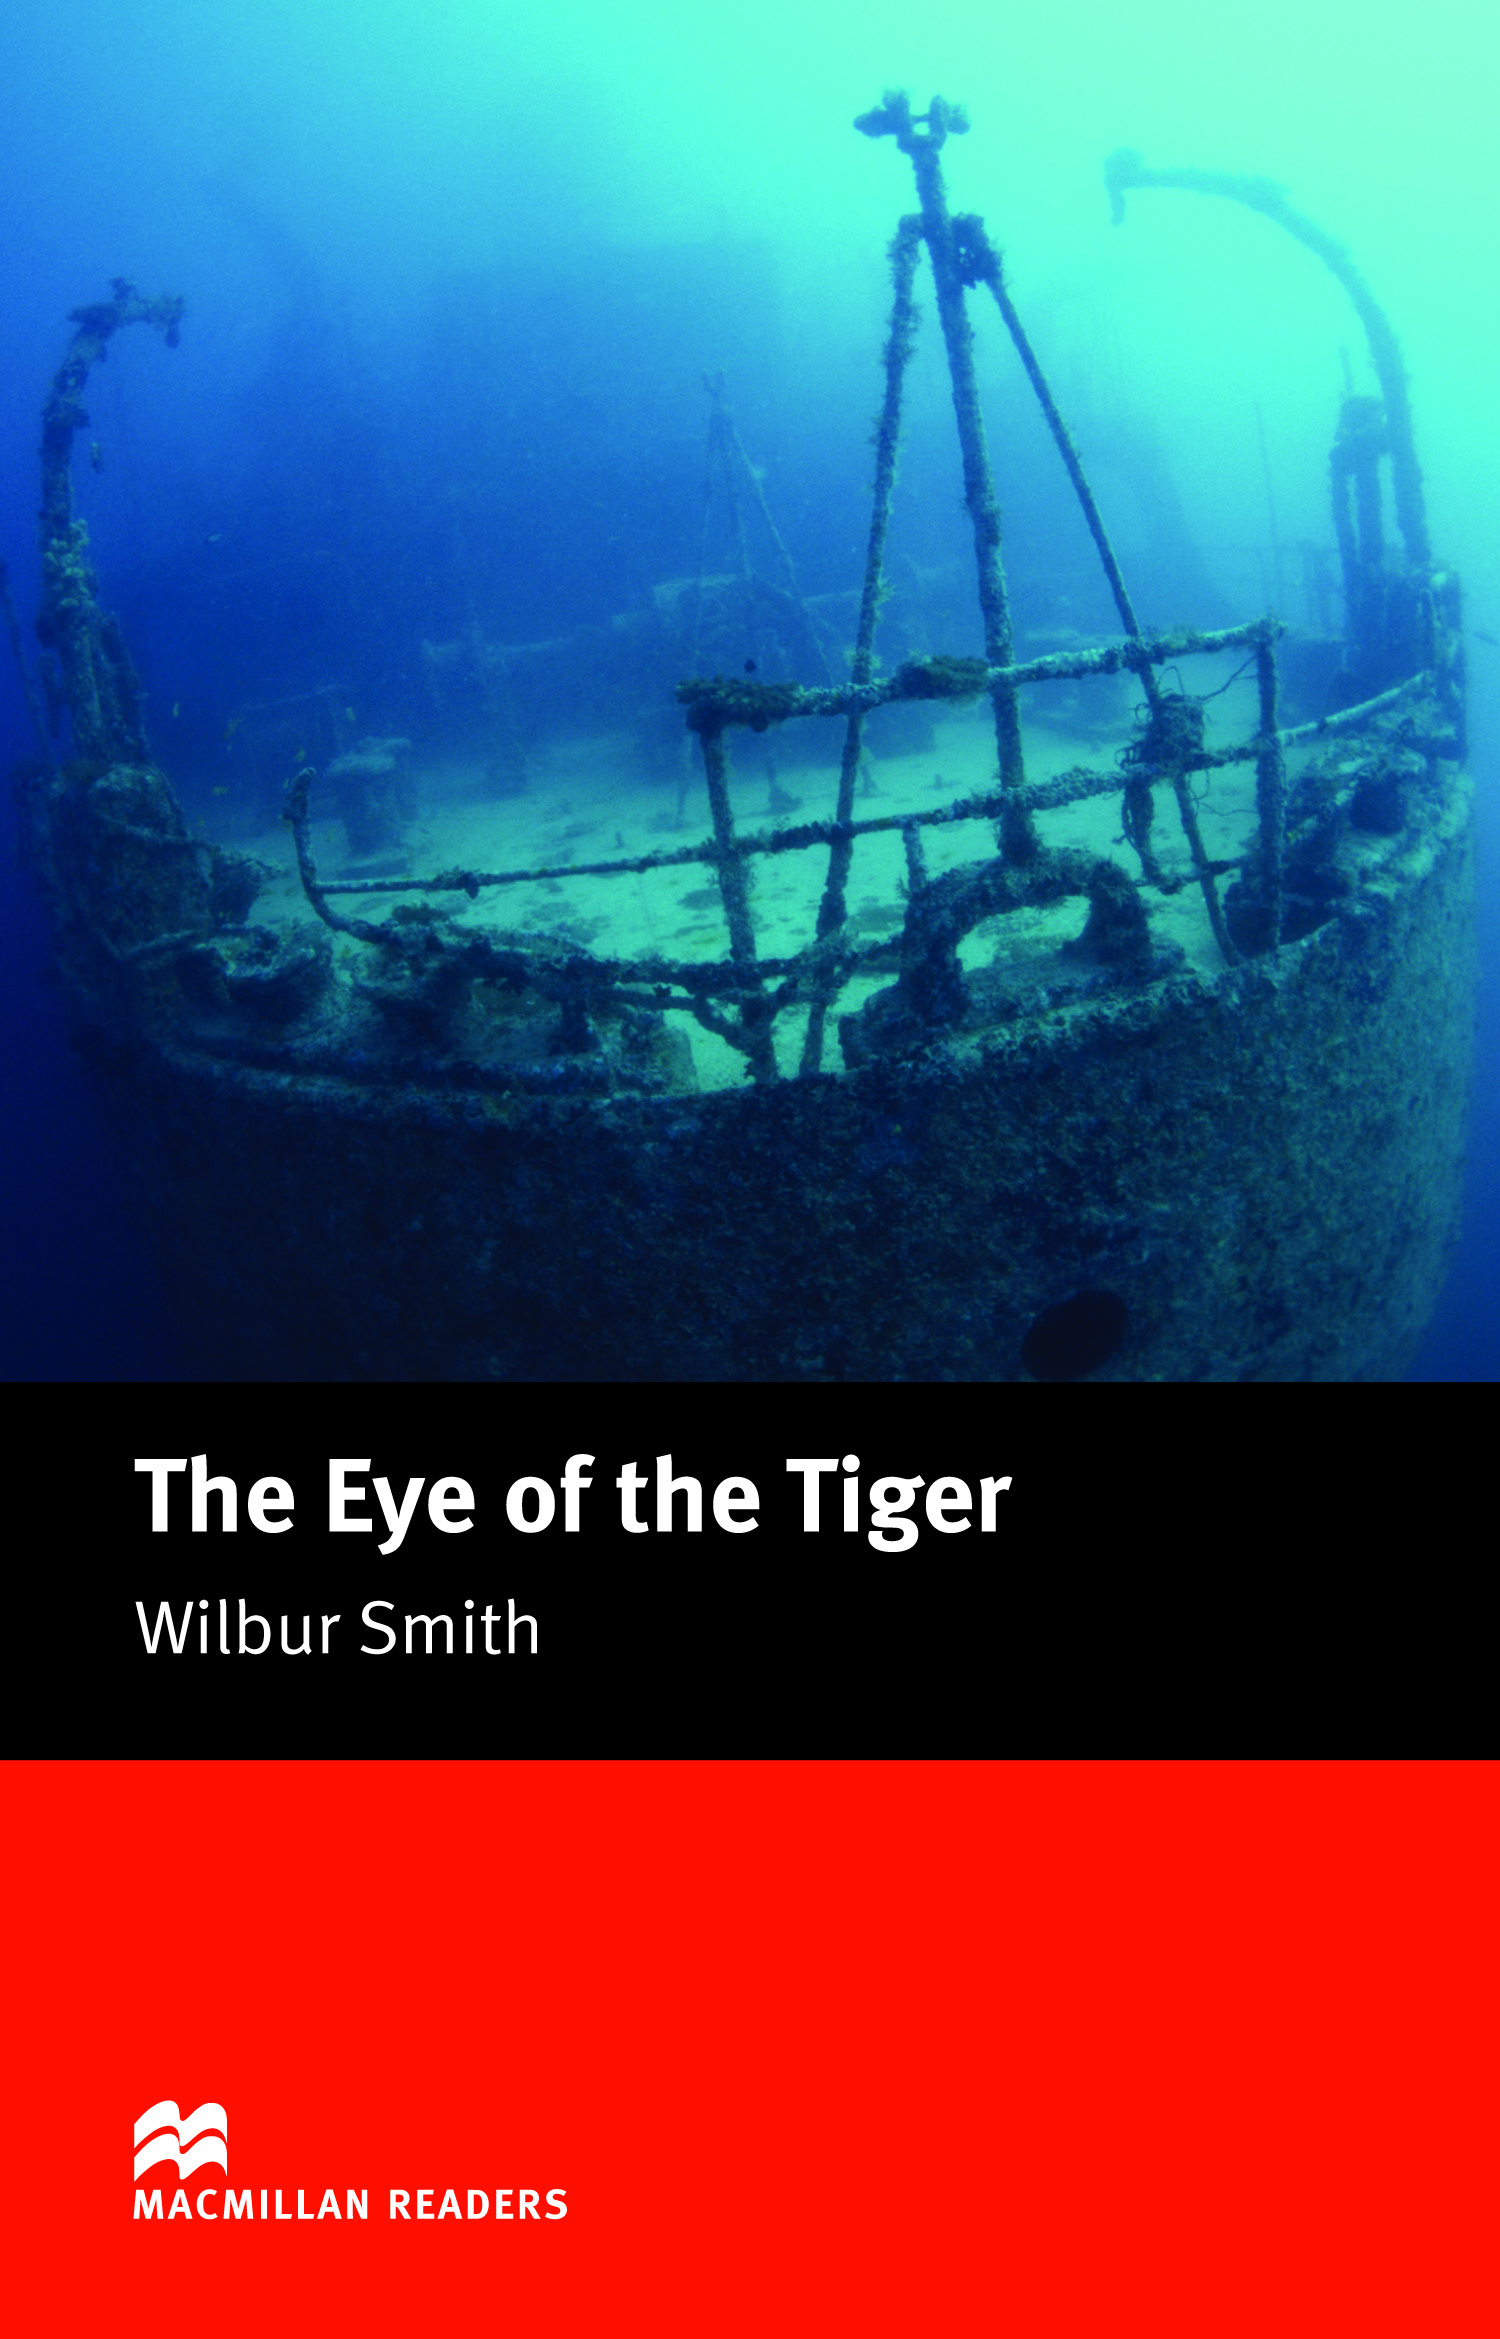 Macmillan Readers: The Eye of the Tiger